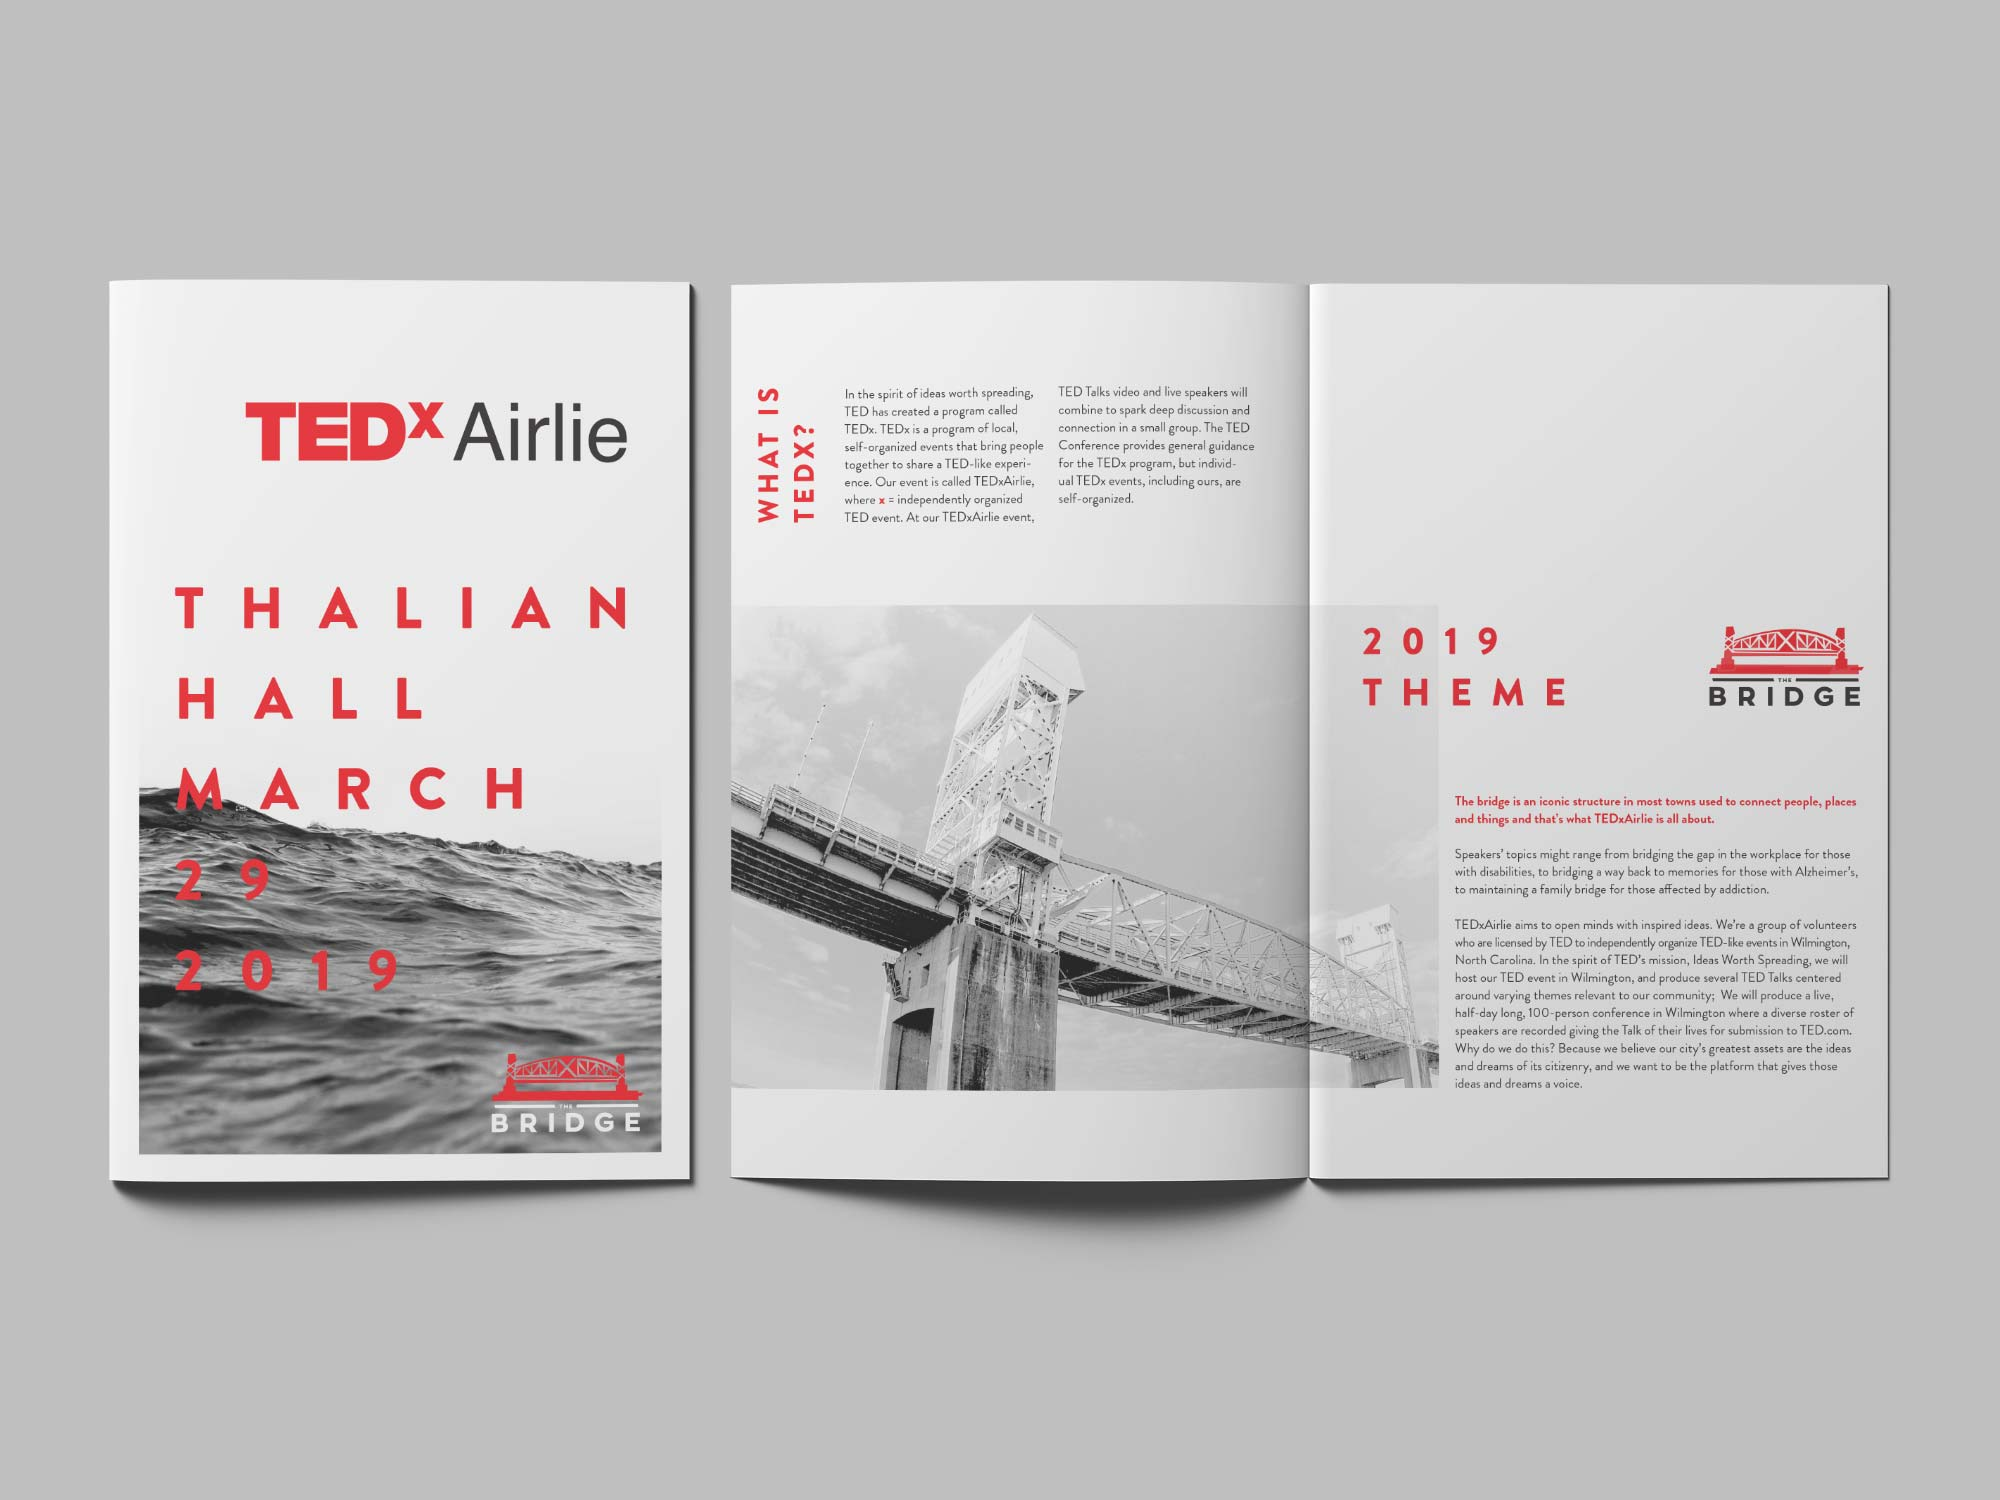 TEDxAirlie_TEDx-Wilmignton-Branding-Booklet-Program-Design_CoverPlusOne.jpg